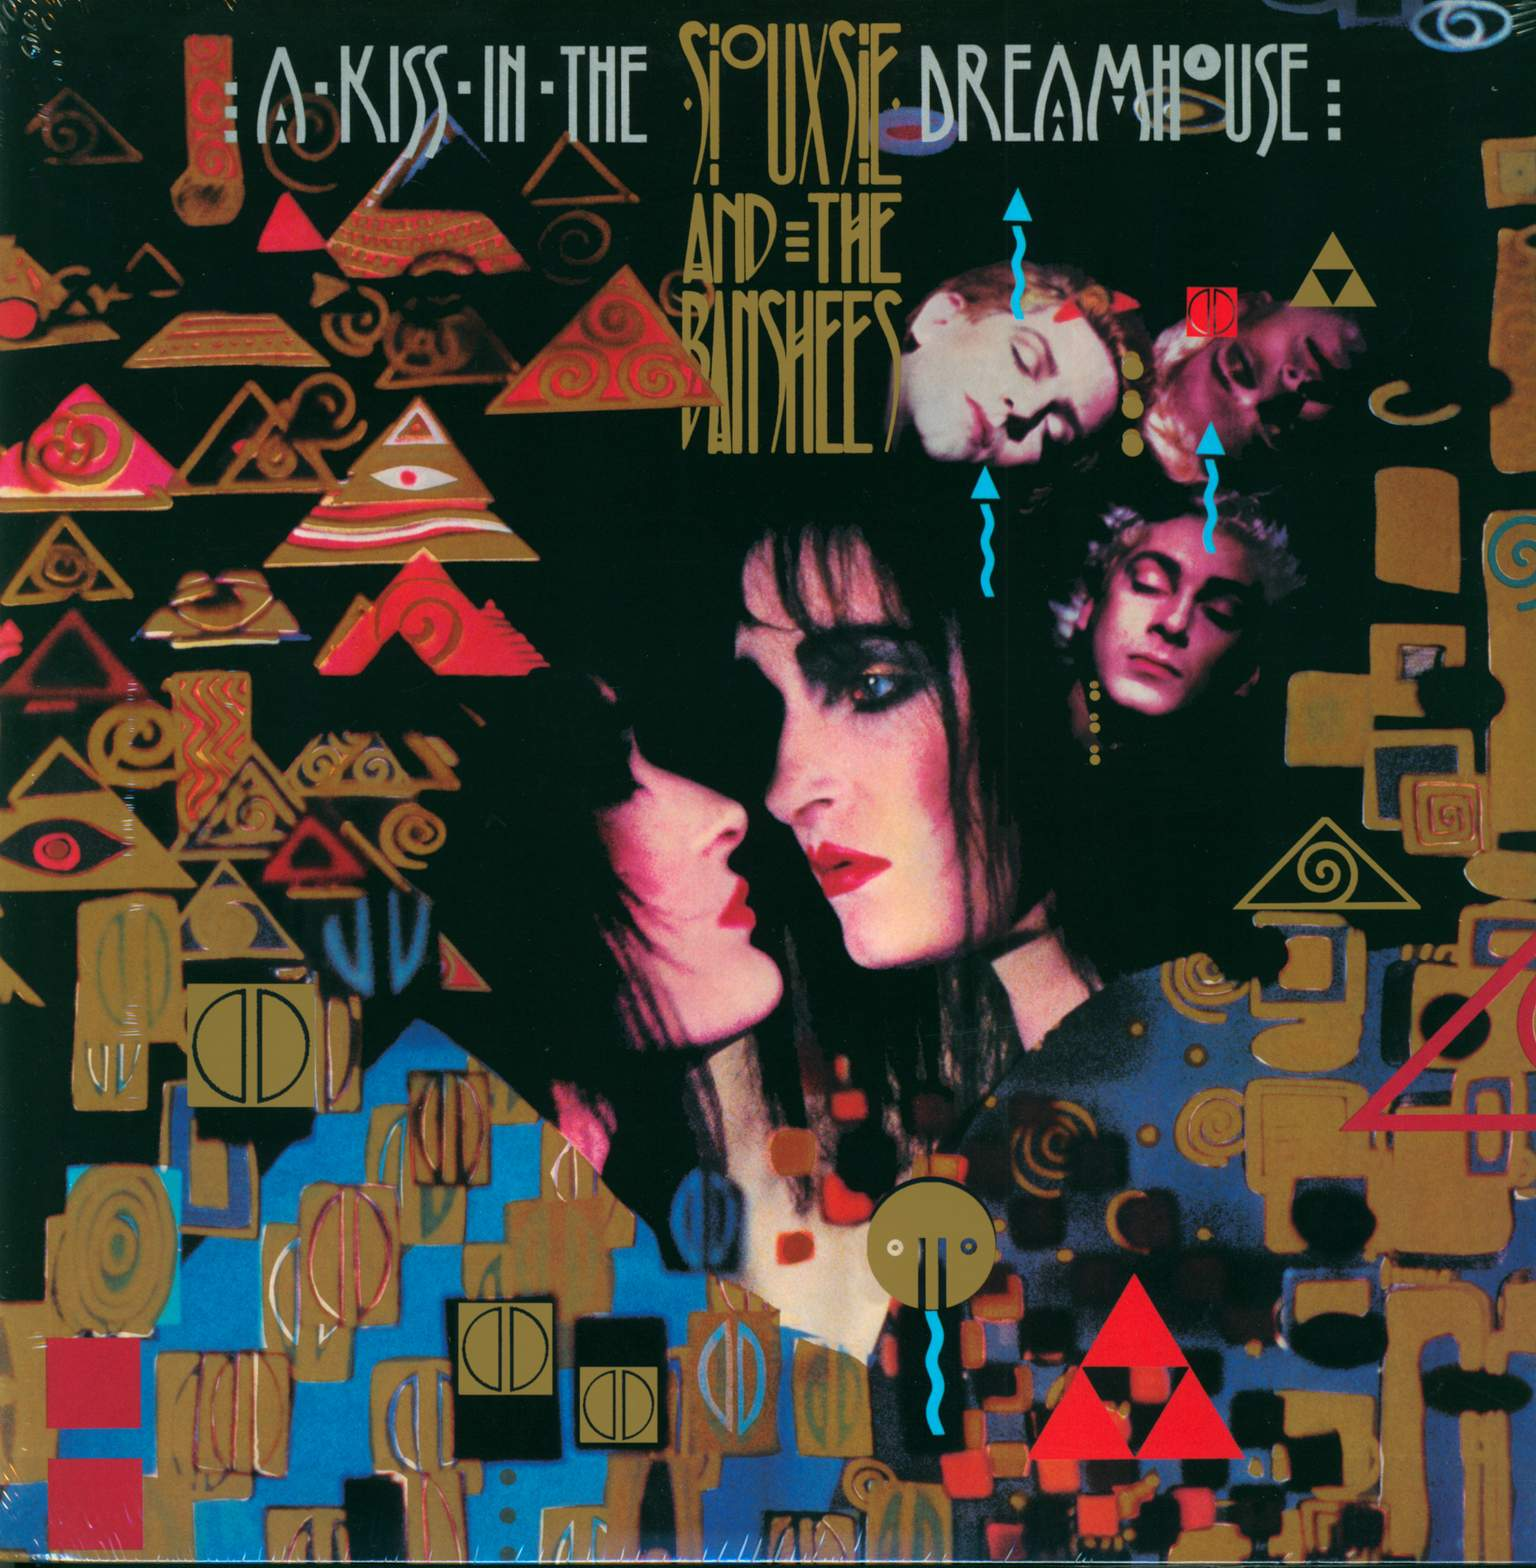 Siouxsie & the Banshees: A Kiss In The Dreamhouse, 1×LP (Vinyl)